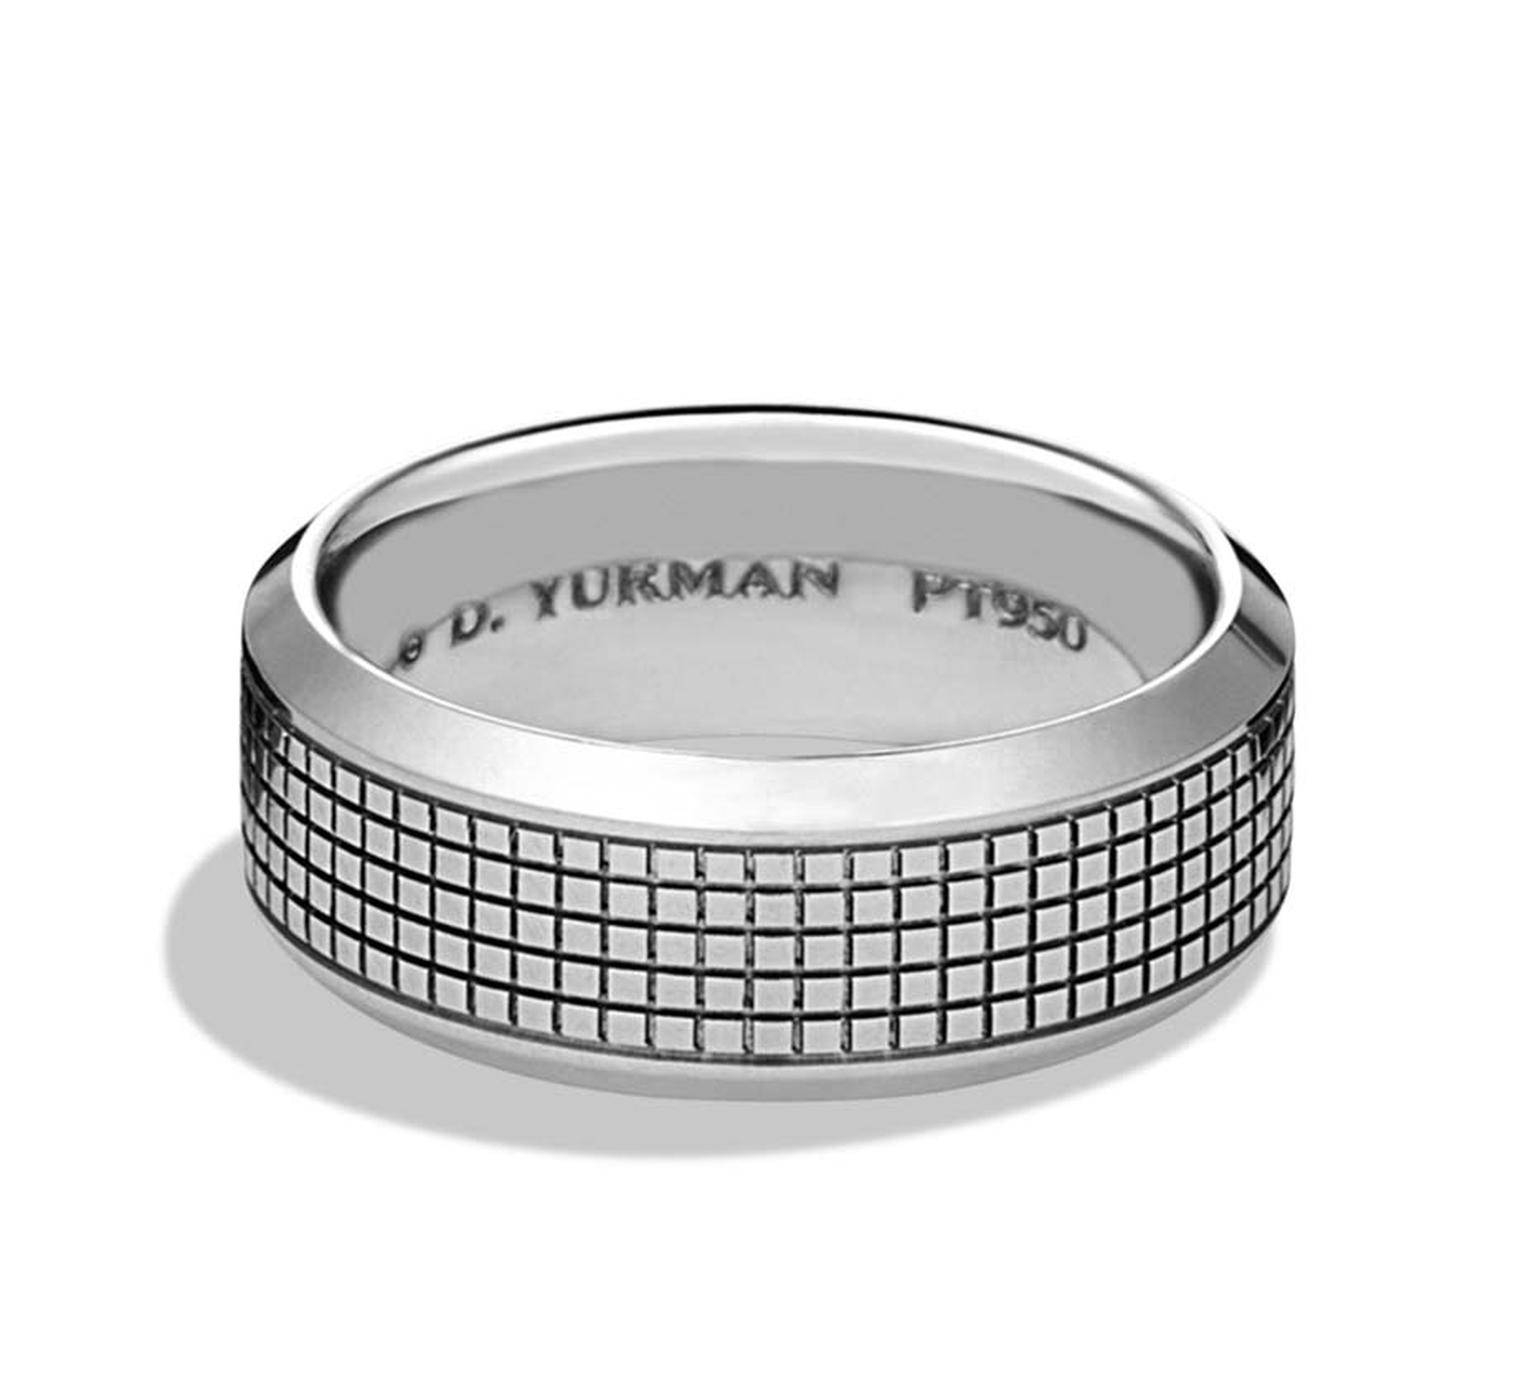 Band Platinum Wedding Ring | David Yurman | The Jewellery Editor Intended For Most Recent Platium Wedding Bands (View 1 of 15)